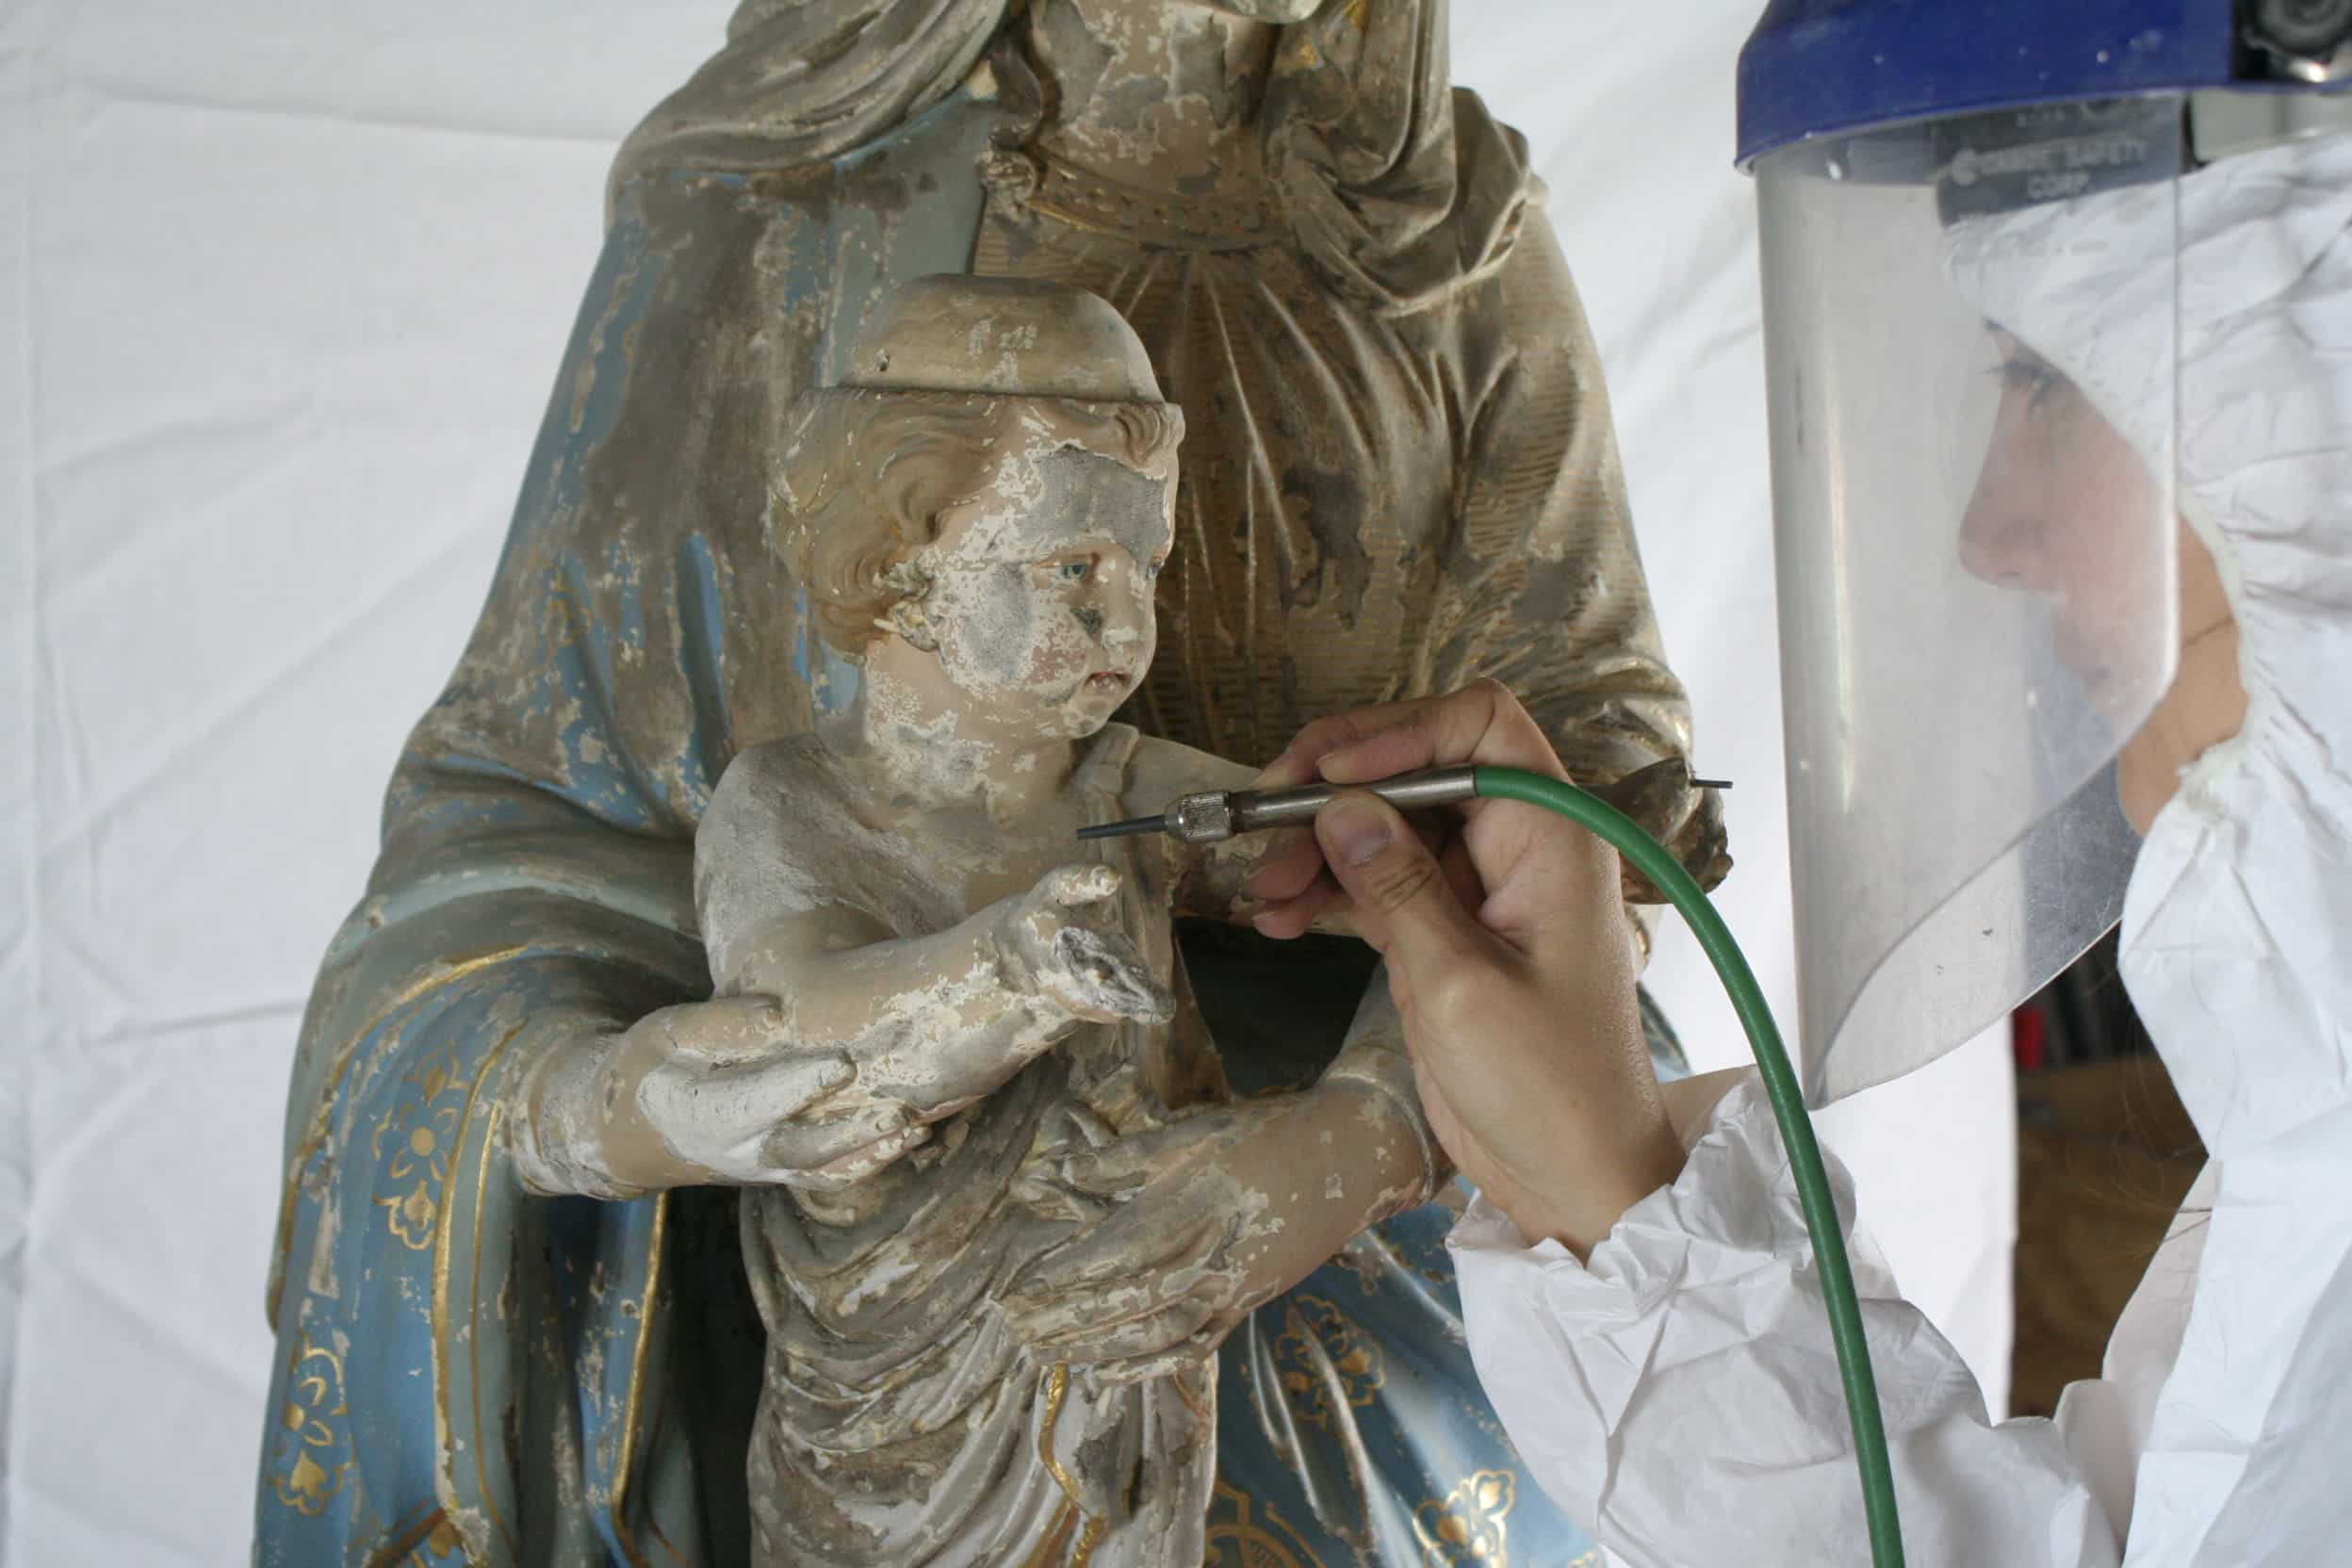 restauration conservation sculpture polychrome